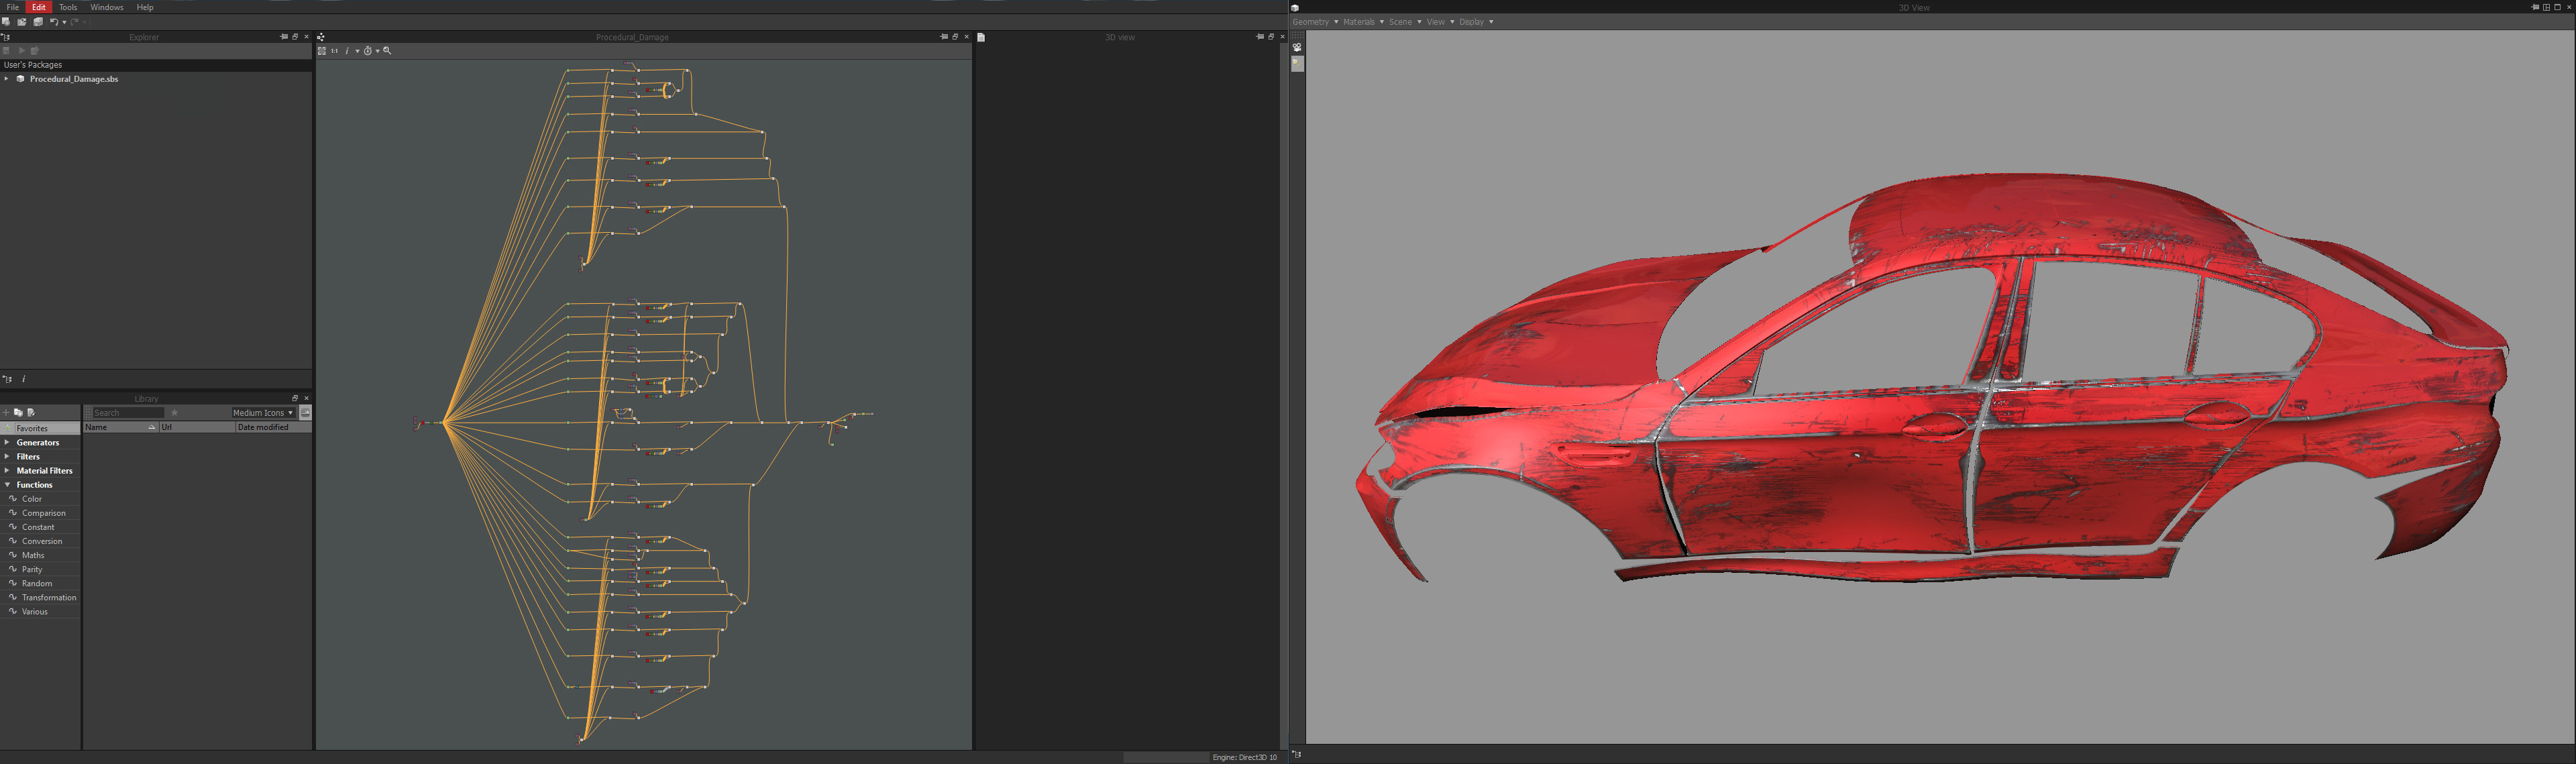 The procedural damage tool was developed using Allegorithmic Substance Designer. The tools main brief was to automate what would take an Artist a day creating, into a simple button press. The tool ran in 3DSMax with a user simple interface.